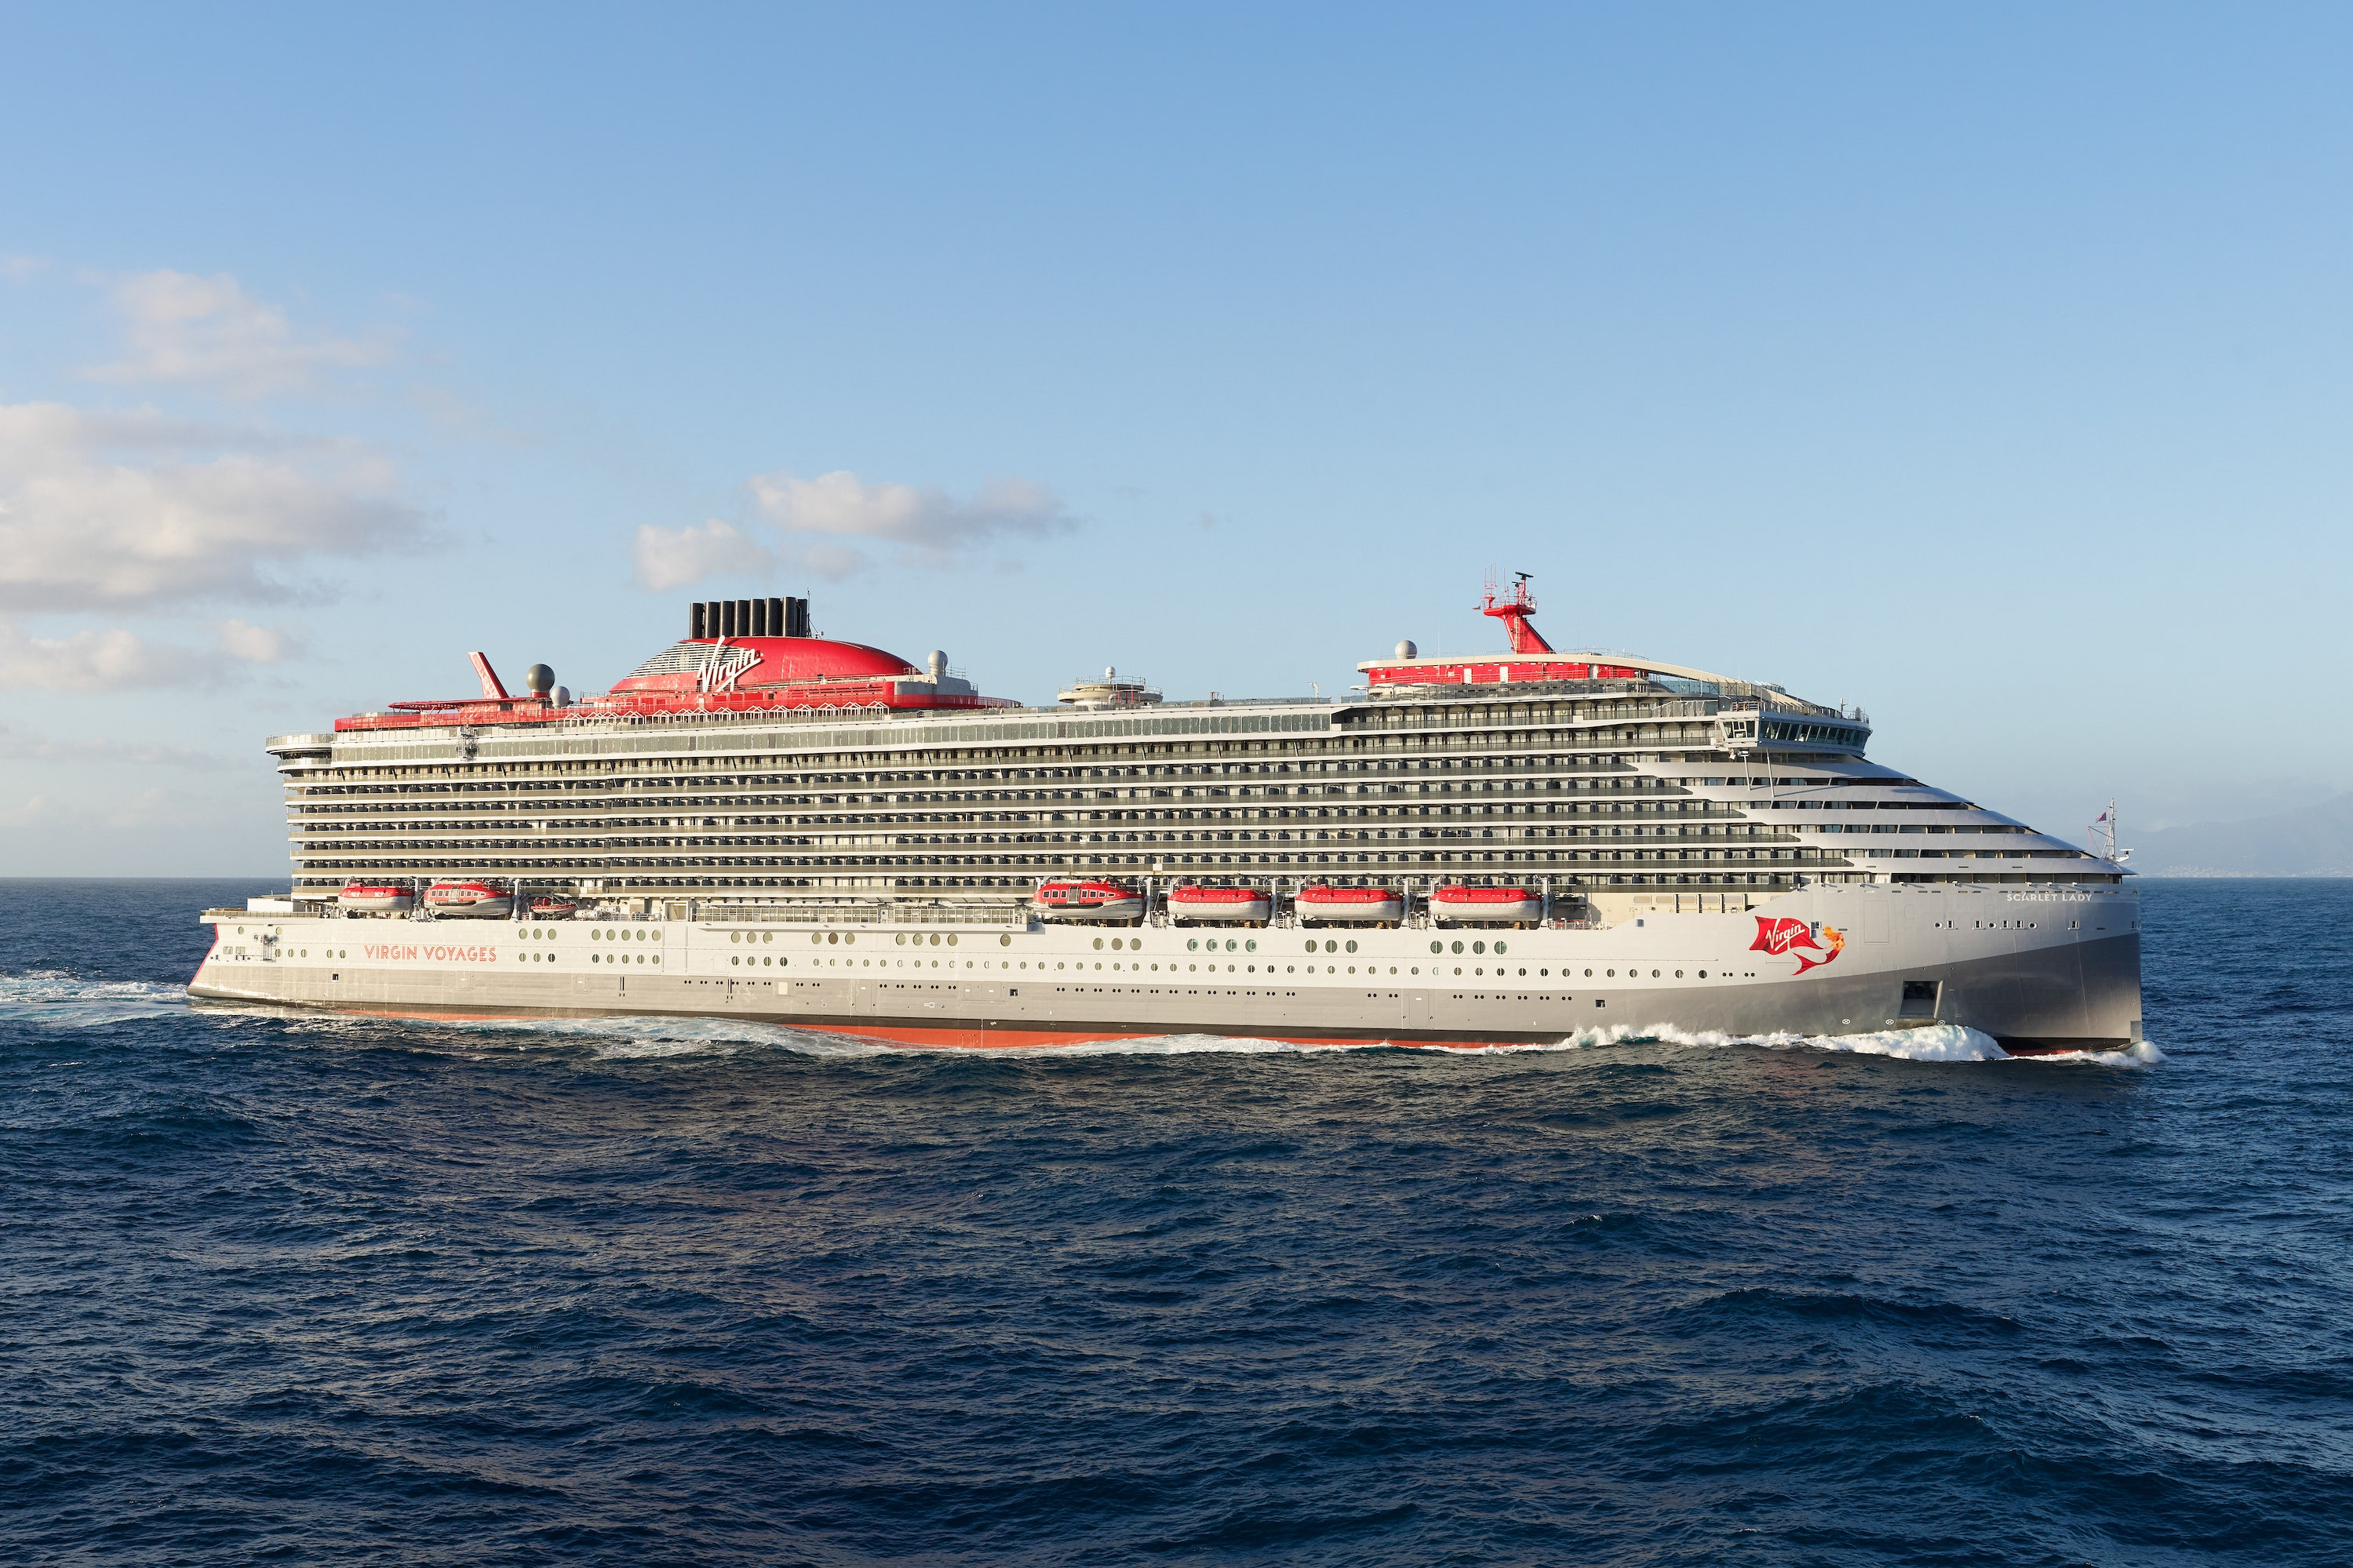 Virgin Voyages launches 2,021 free cruises